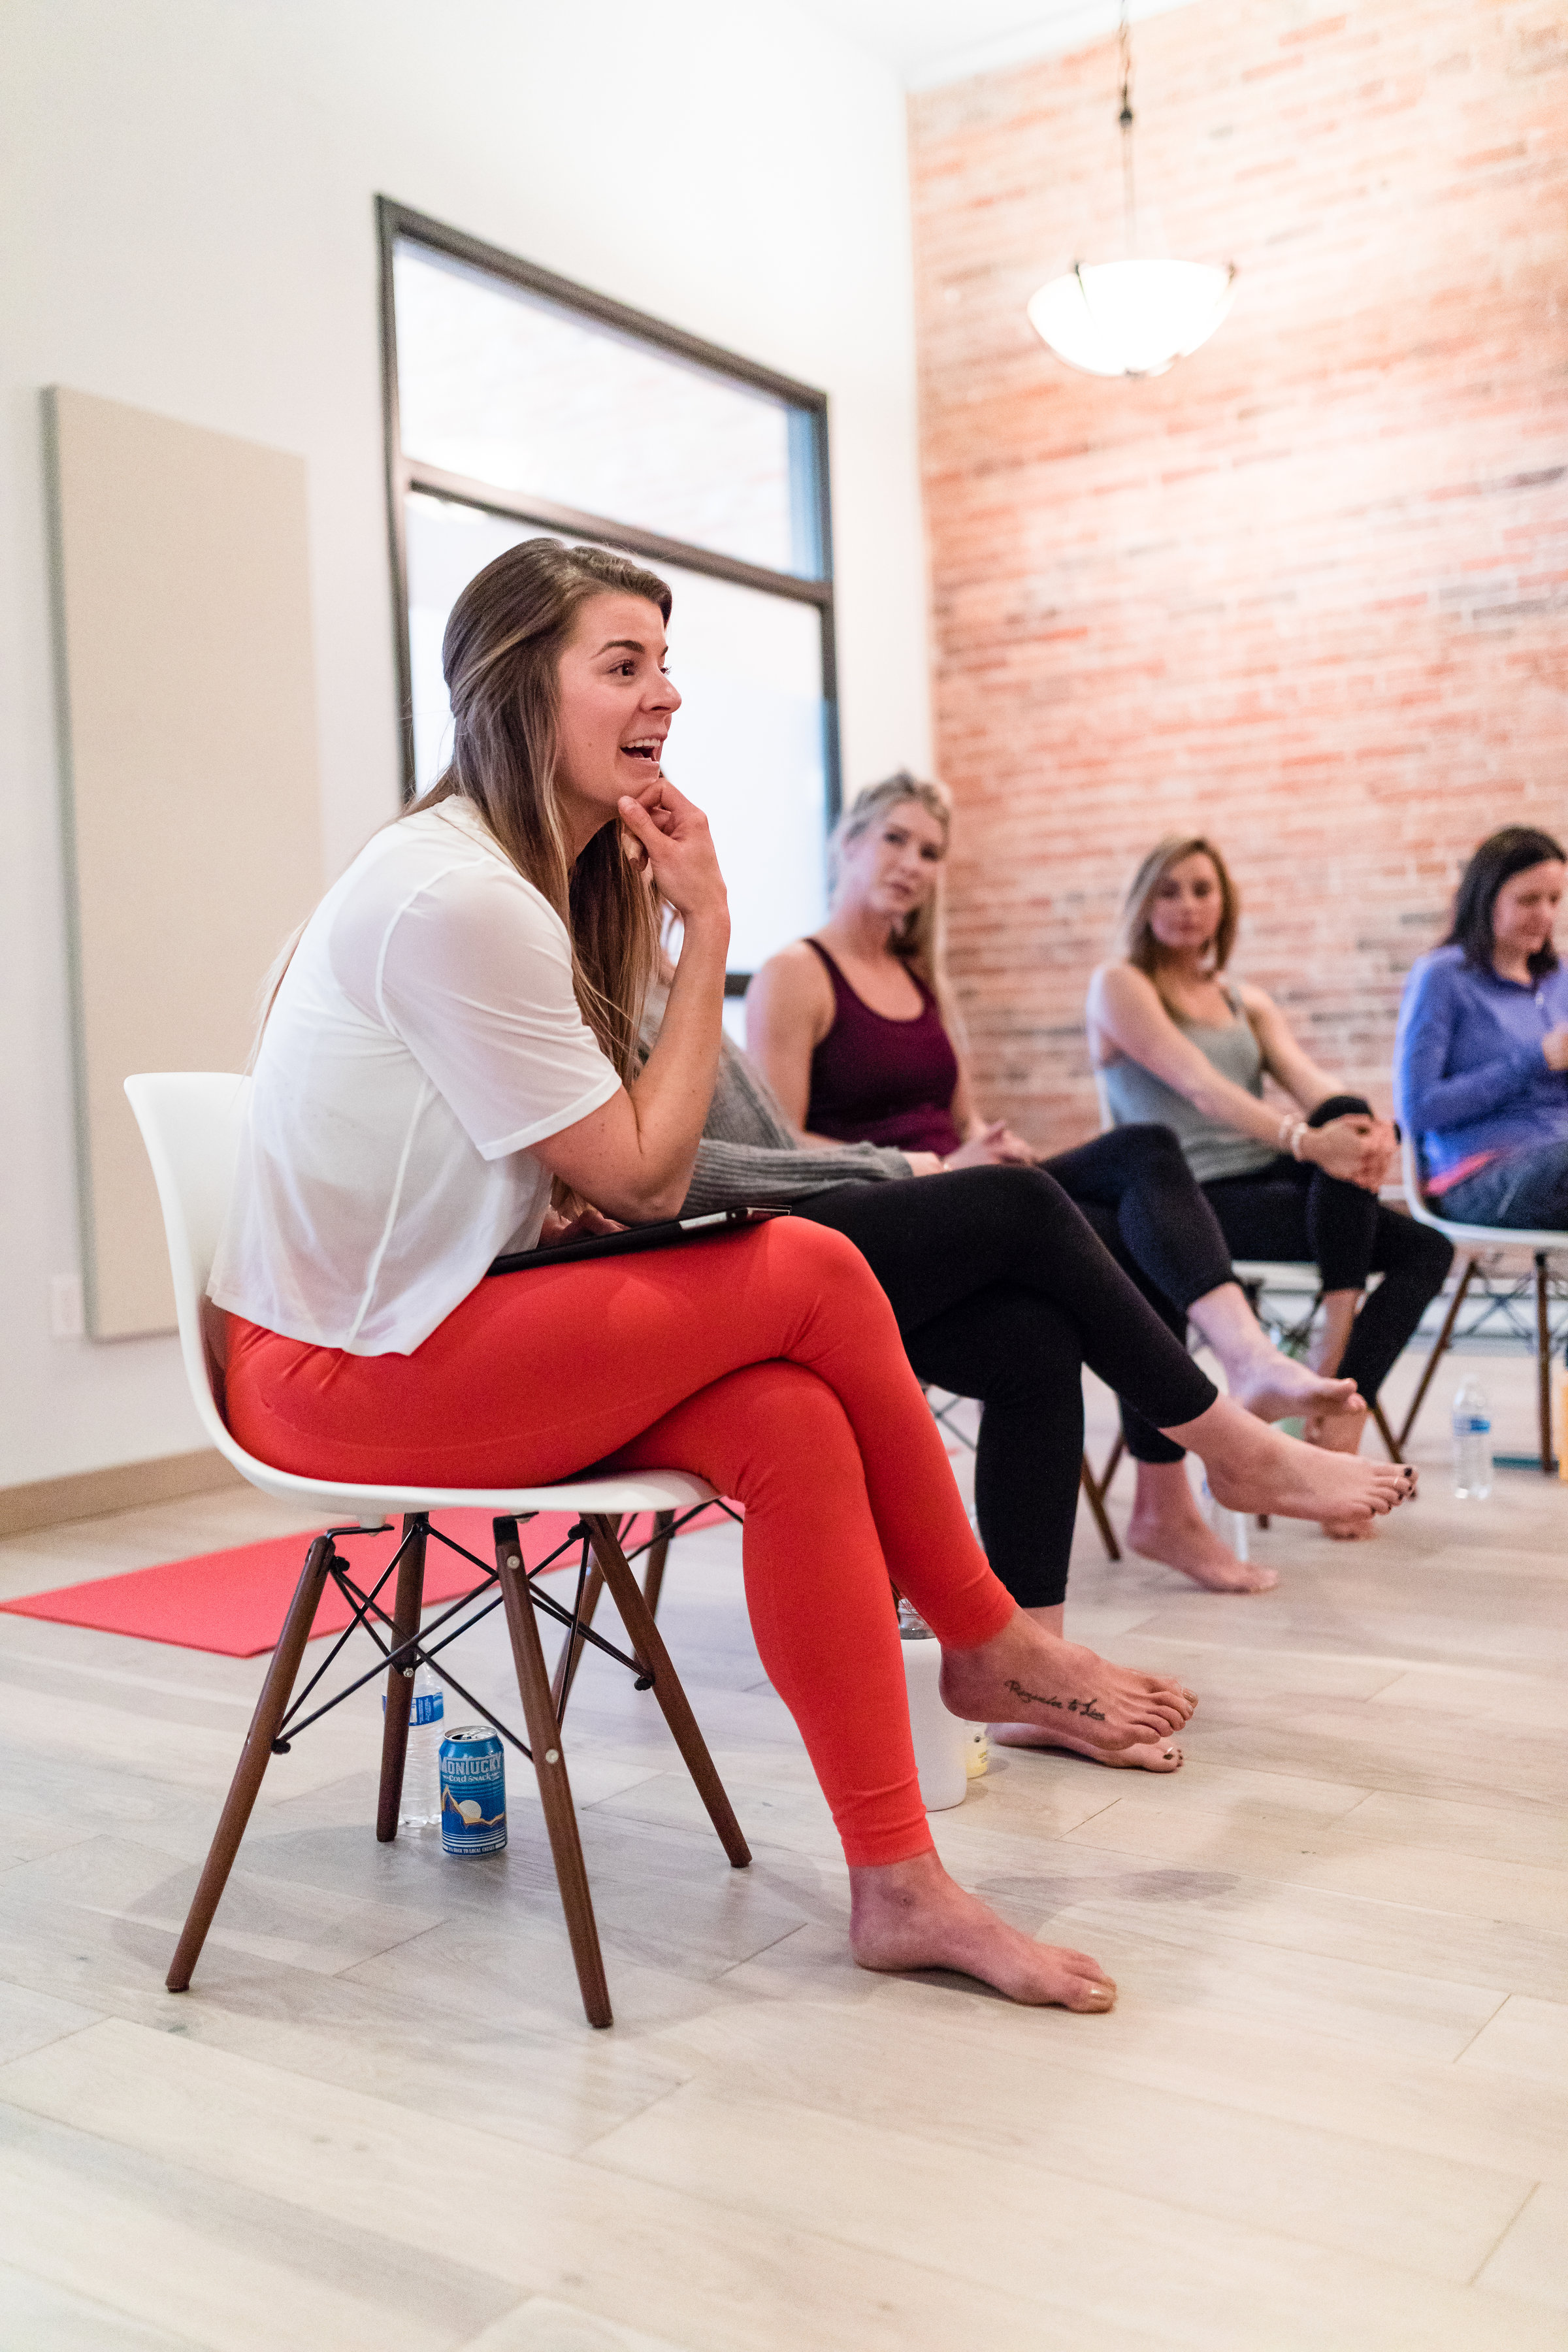 a wellness event in bozeman montana dedicated to finding your community